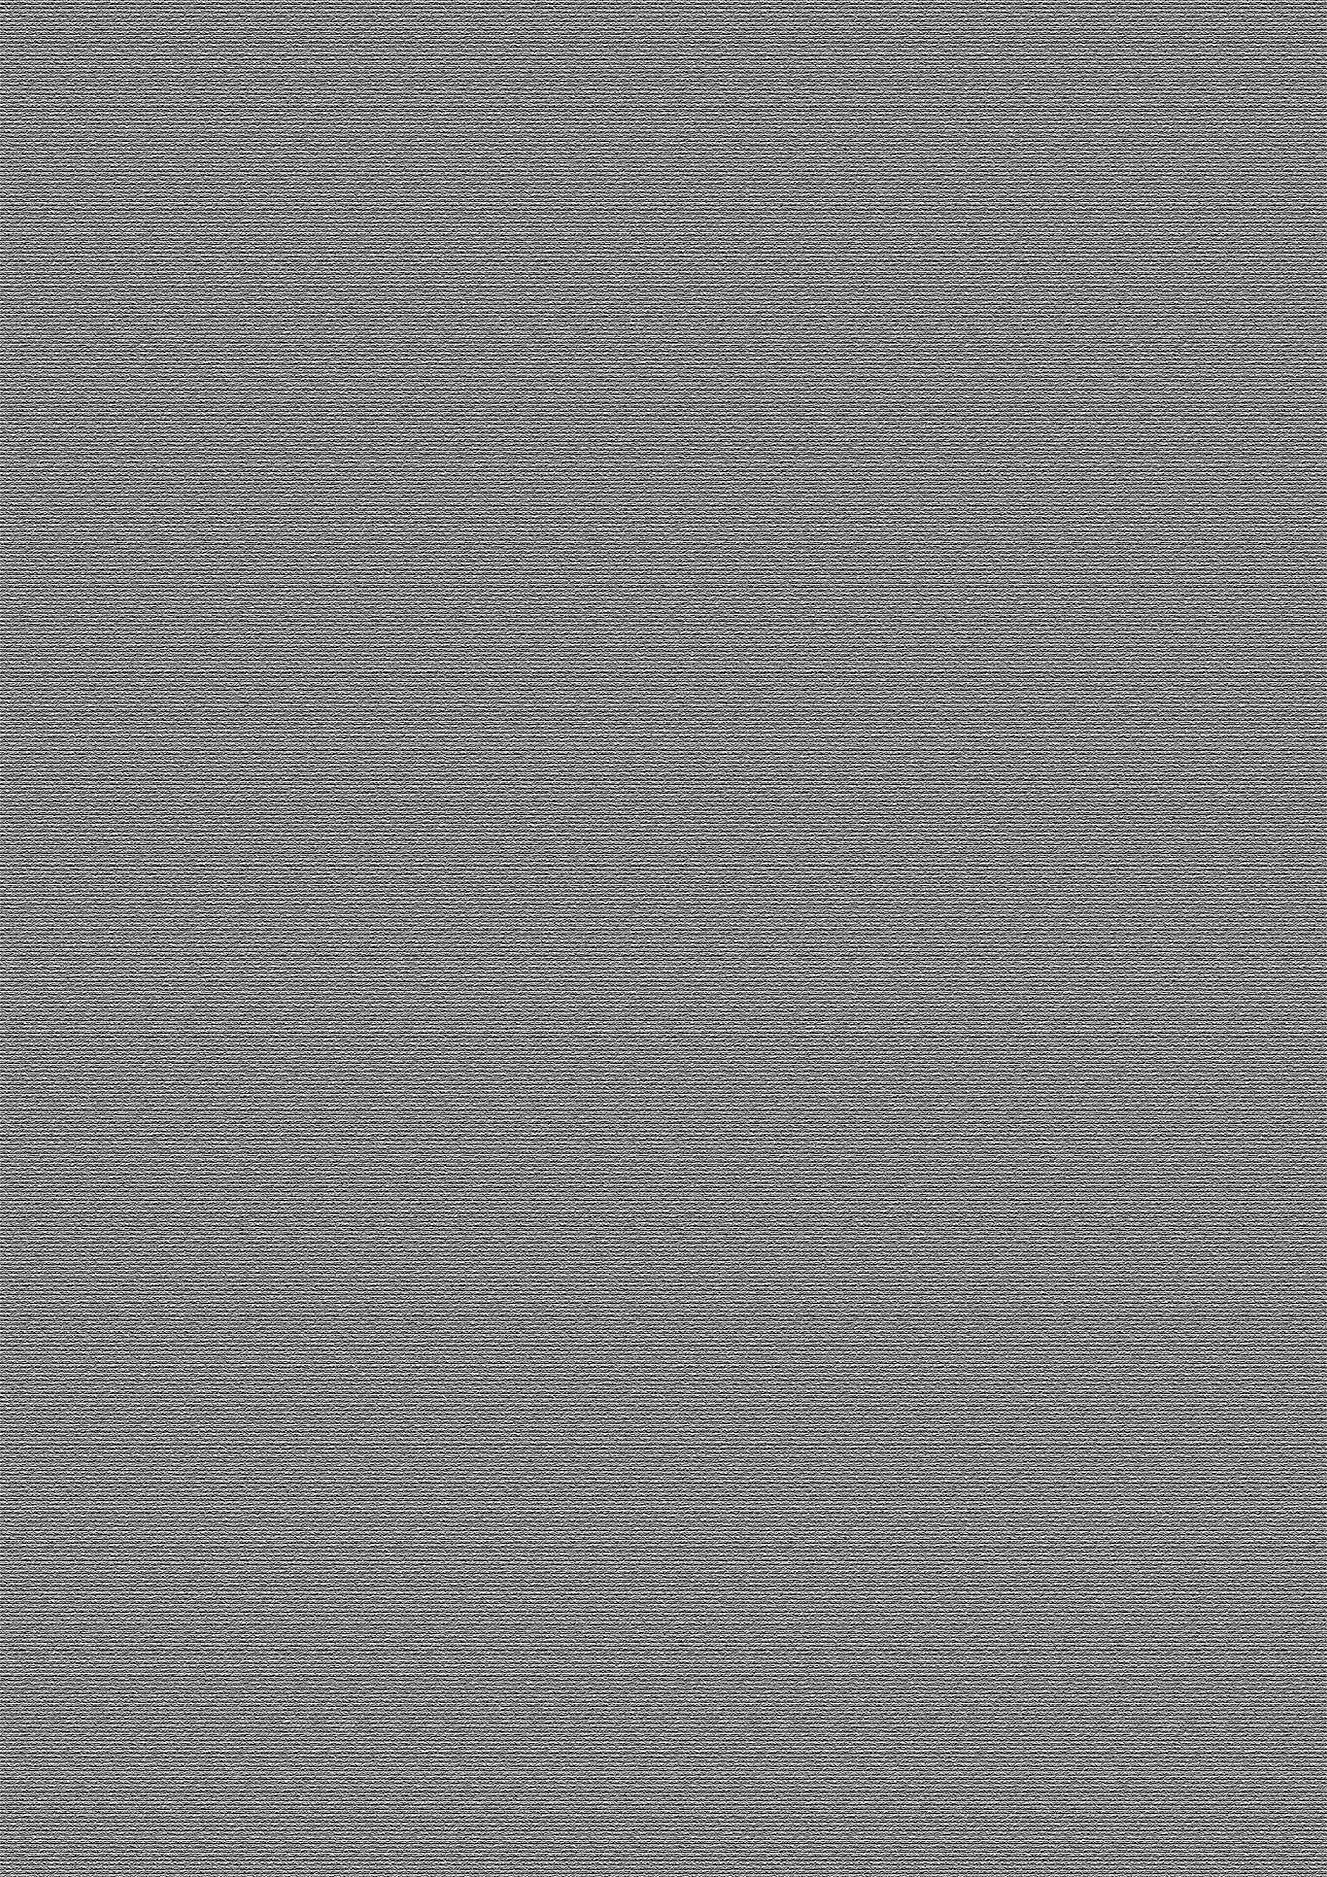 GREY BACKGROUND.jpg